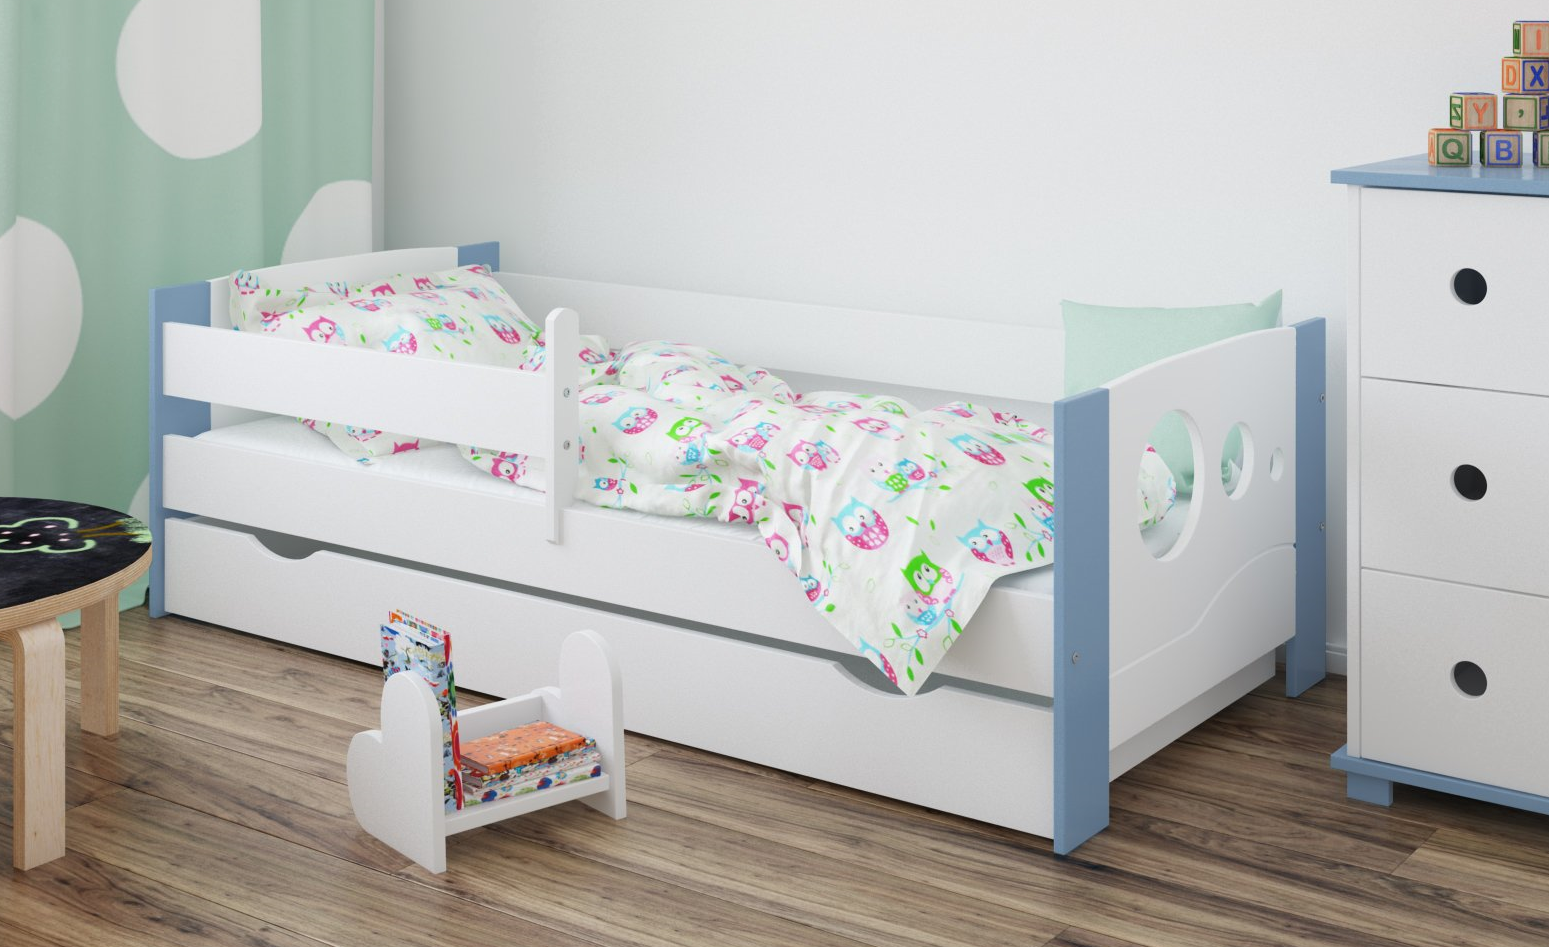 An Ultimate Guidance For Buying Bed For Your Children!